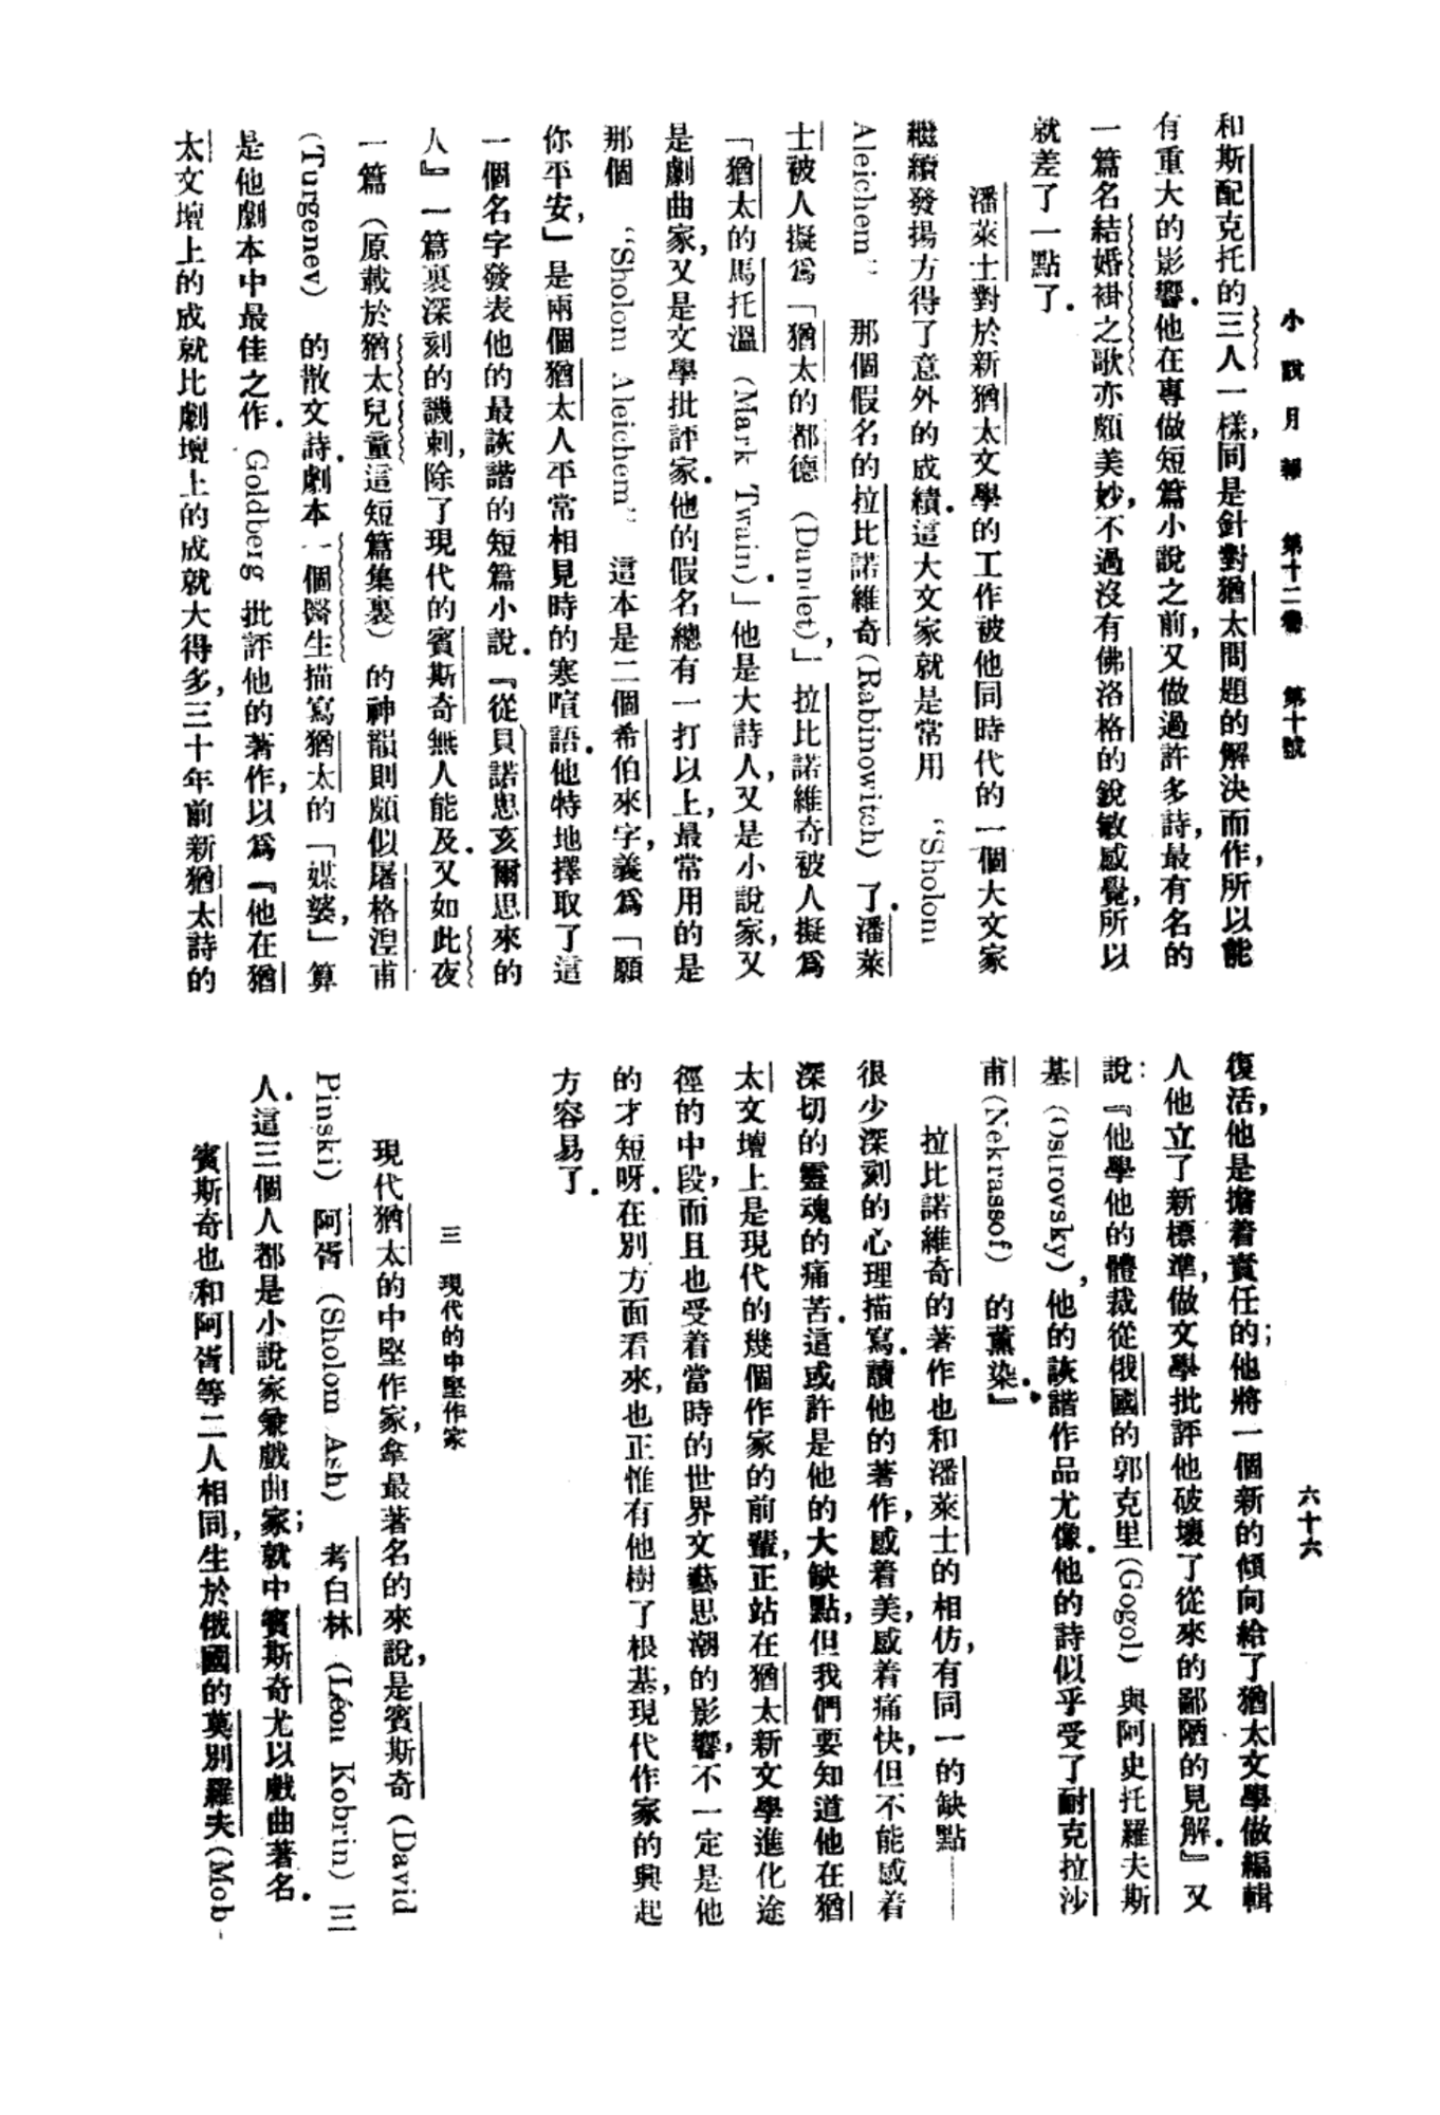 <p>A page of Mao Dun's article where the names of some <em>Klasikers</em> are clarified in English&nbsp;spelling.</p>